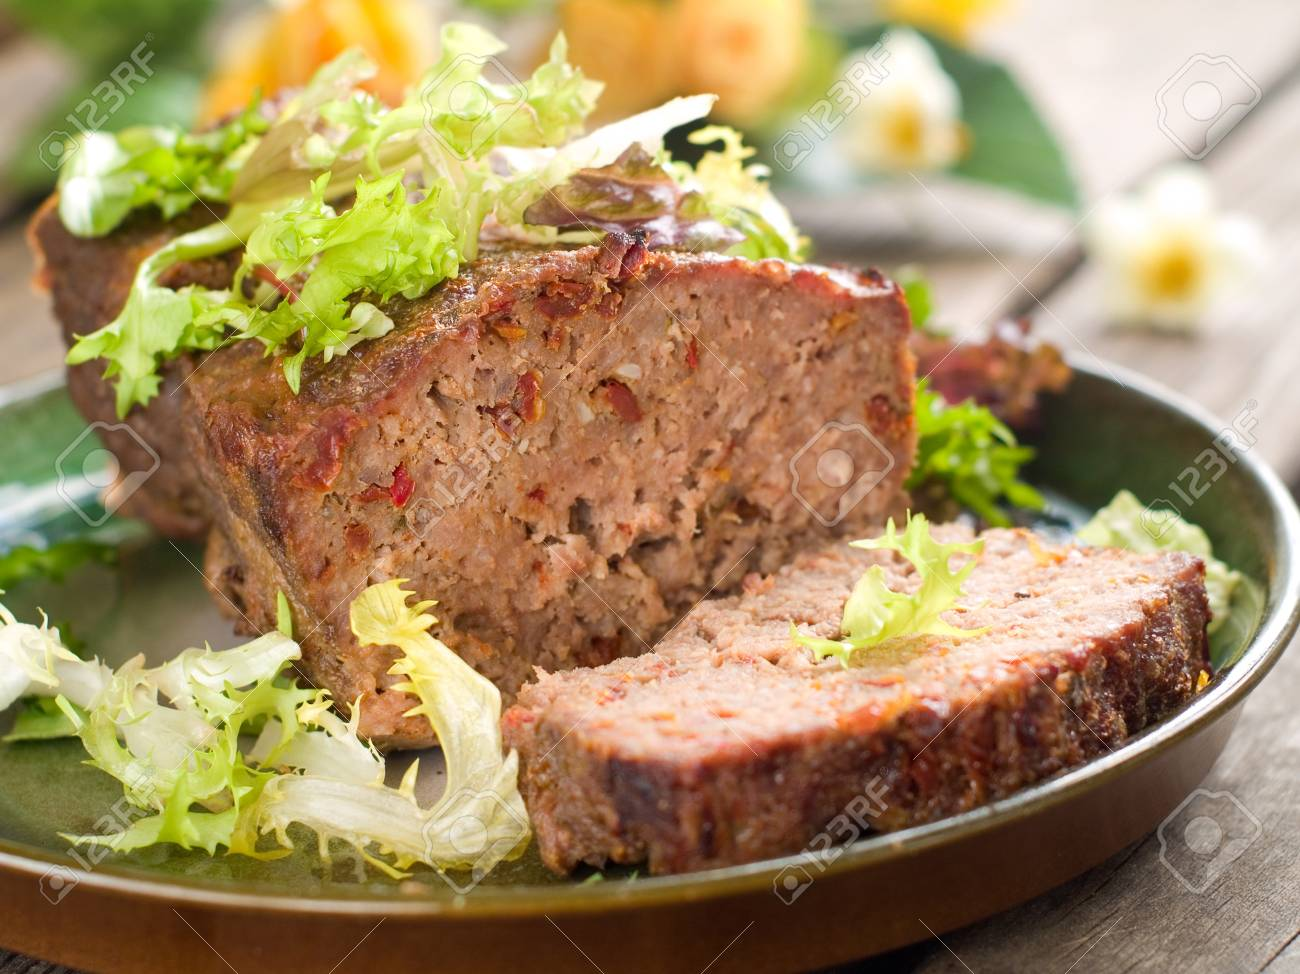 Meatloaf with spice for dinner, selective focus Stock Photo - 17331113